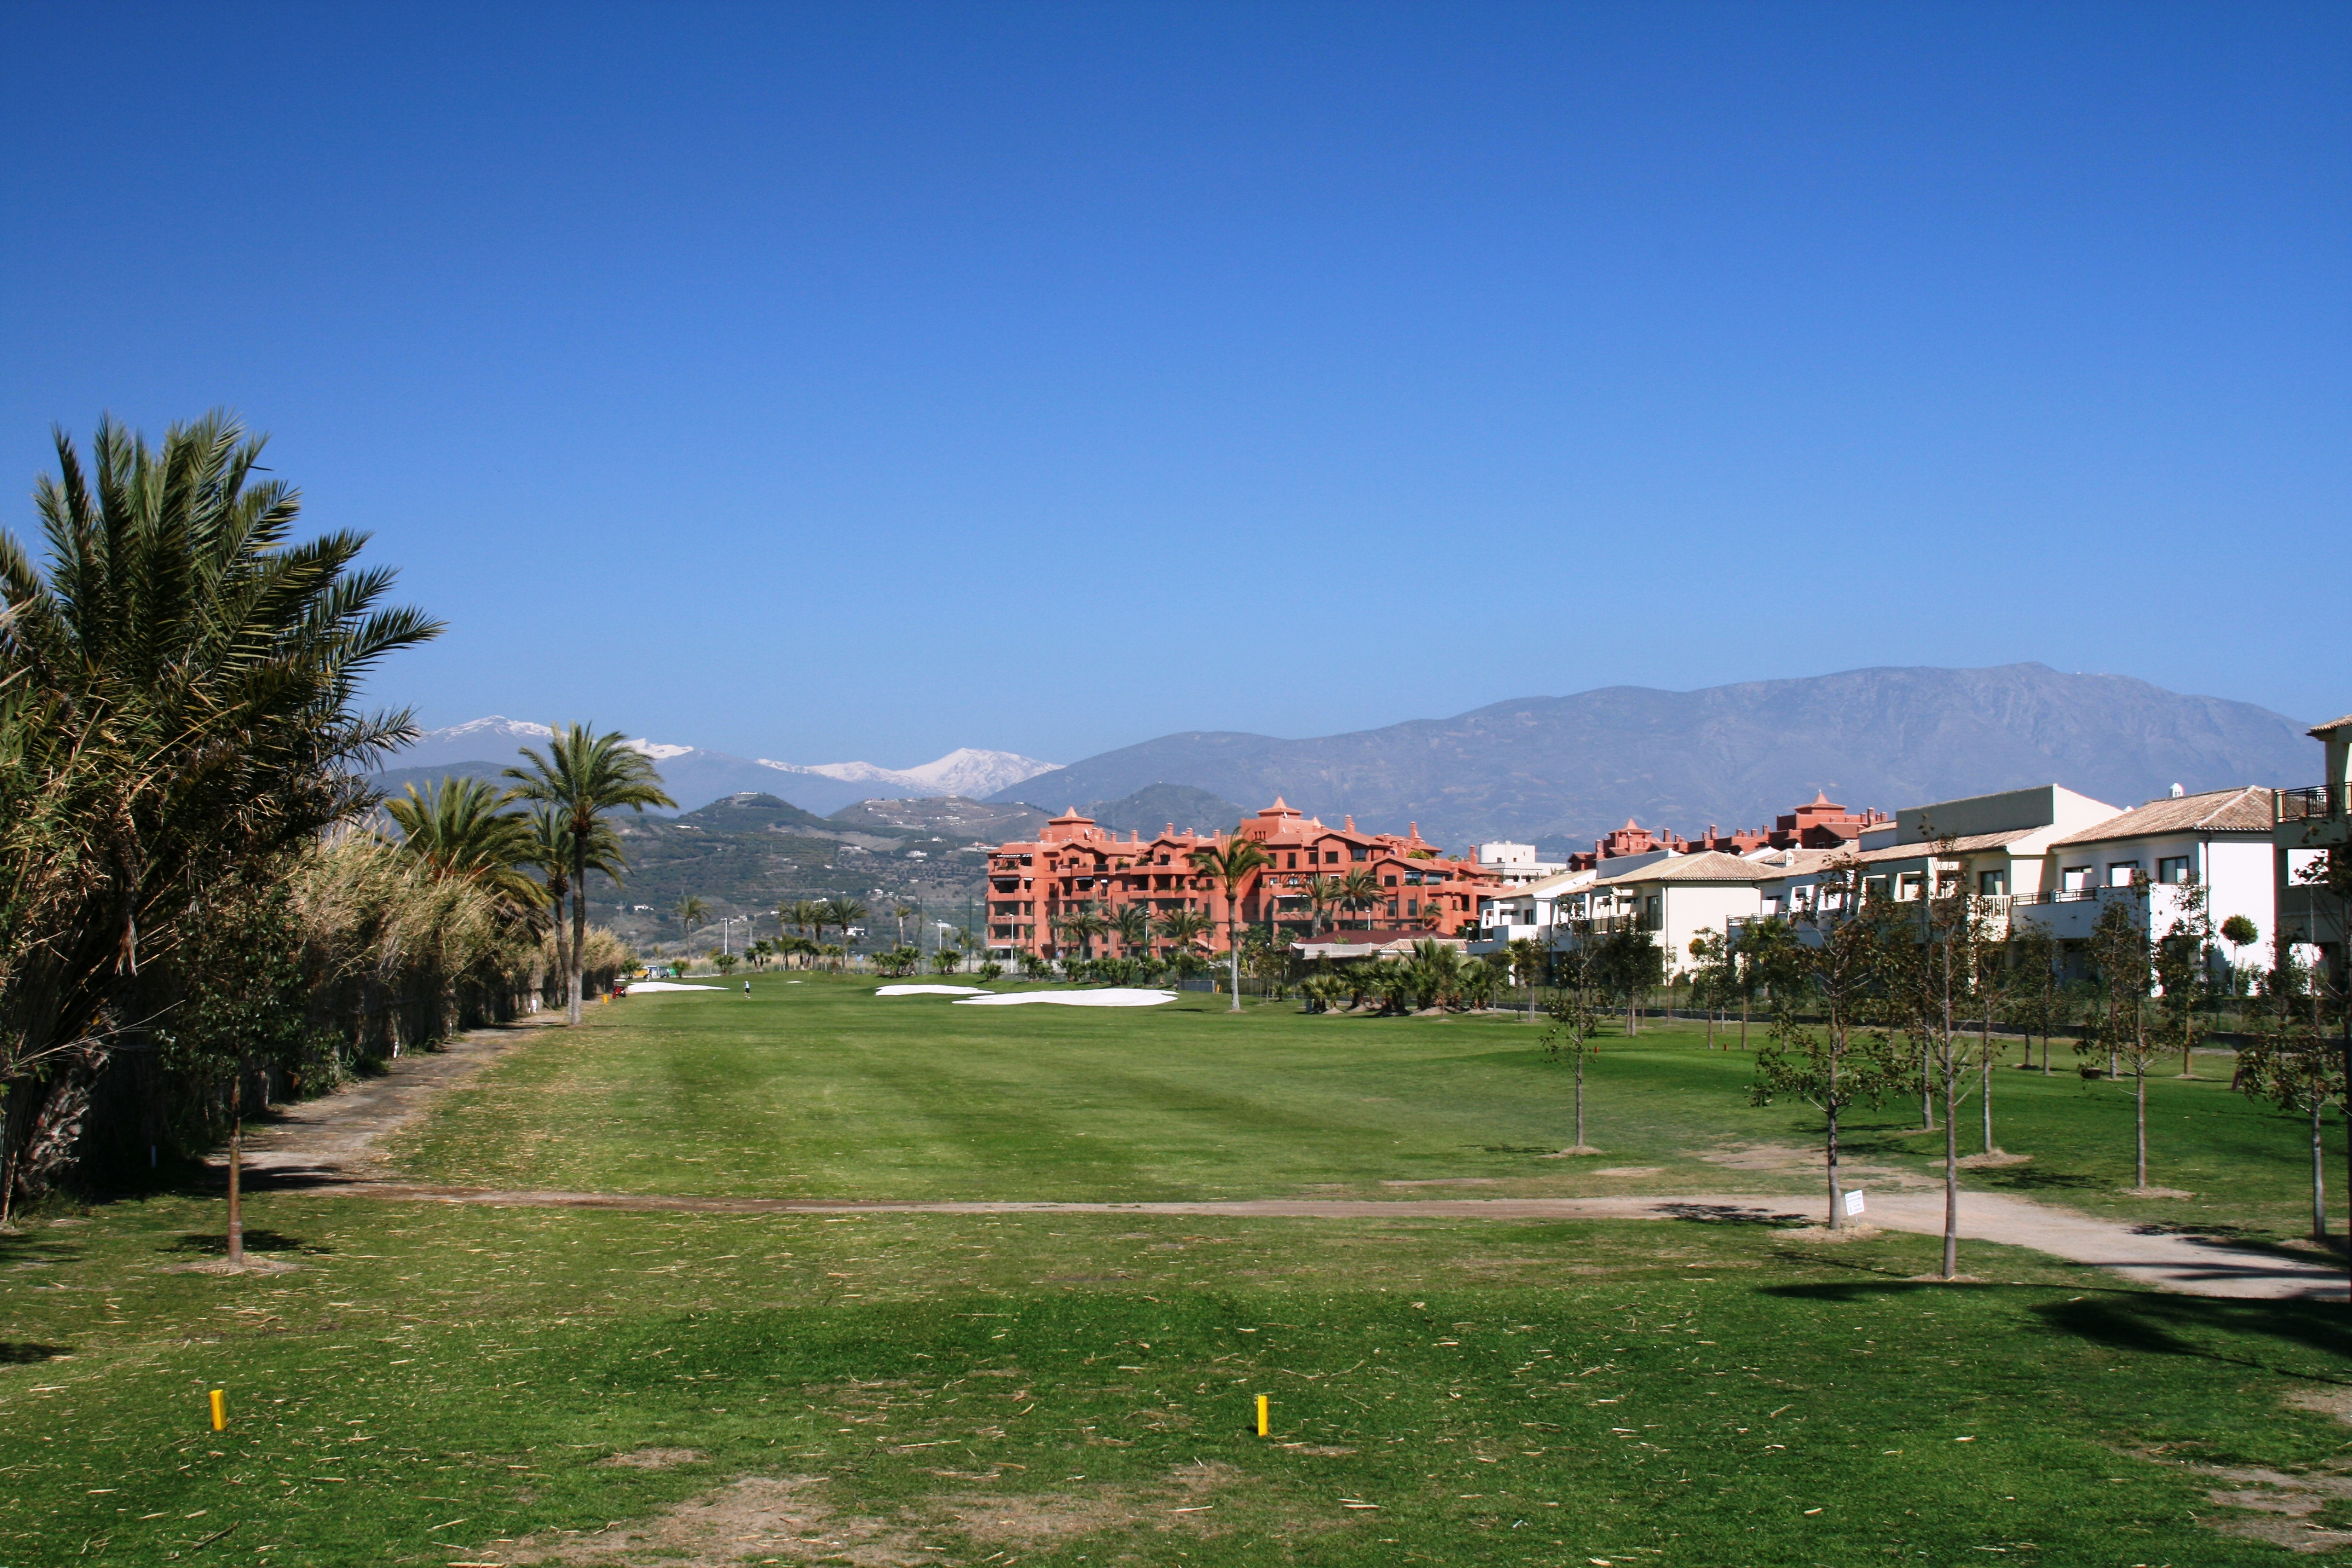 Foto playa Salobreña / La Cagadilla / Punta del Río. Los Moriscos Golf Club - Hole No 3 and ROBINSON Club Playa Granada on the right hand side